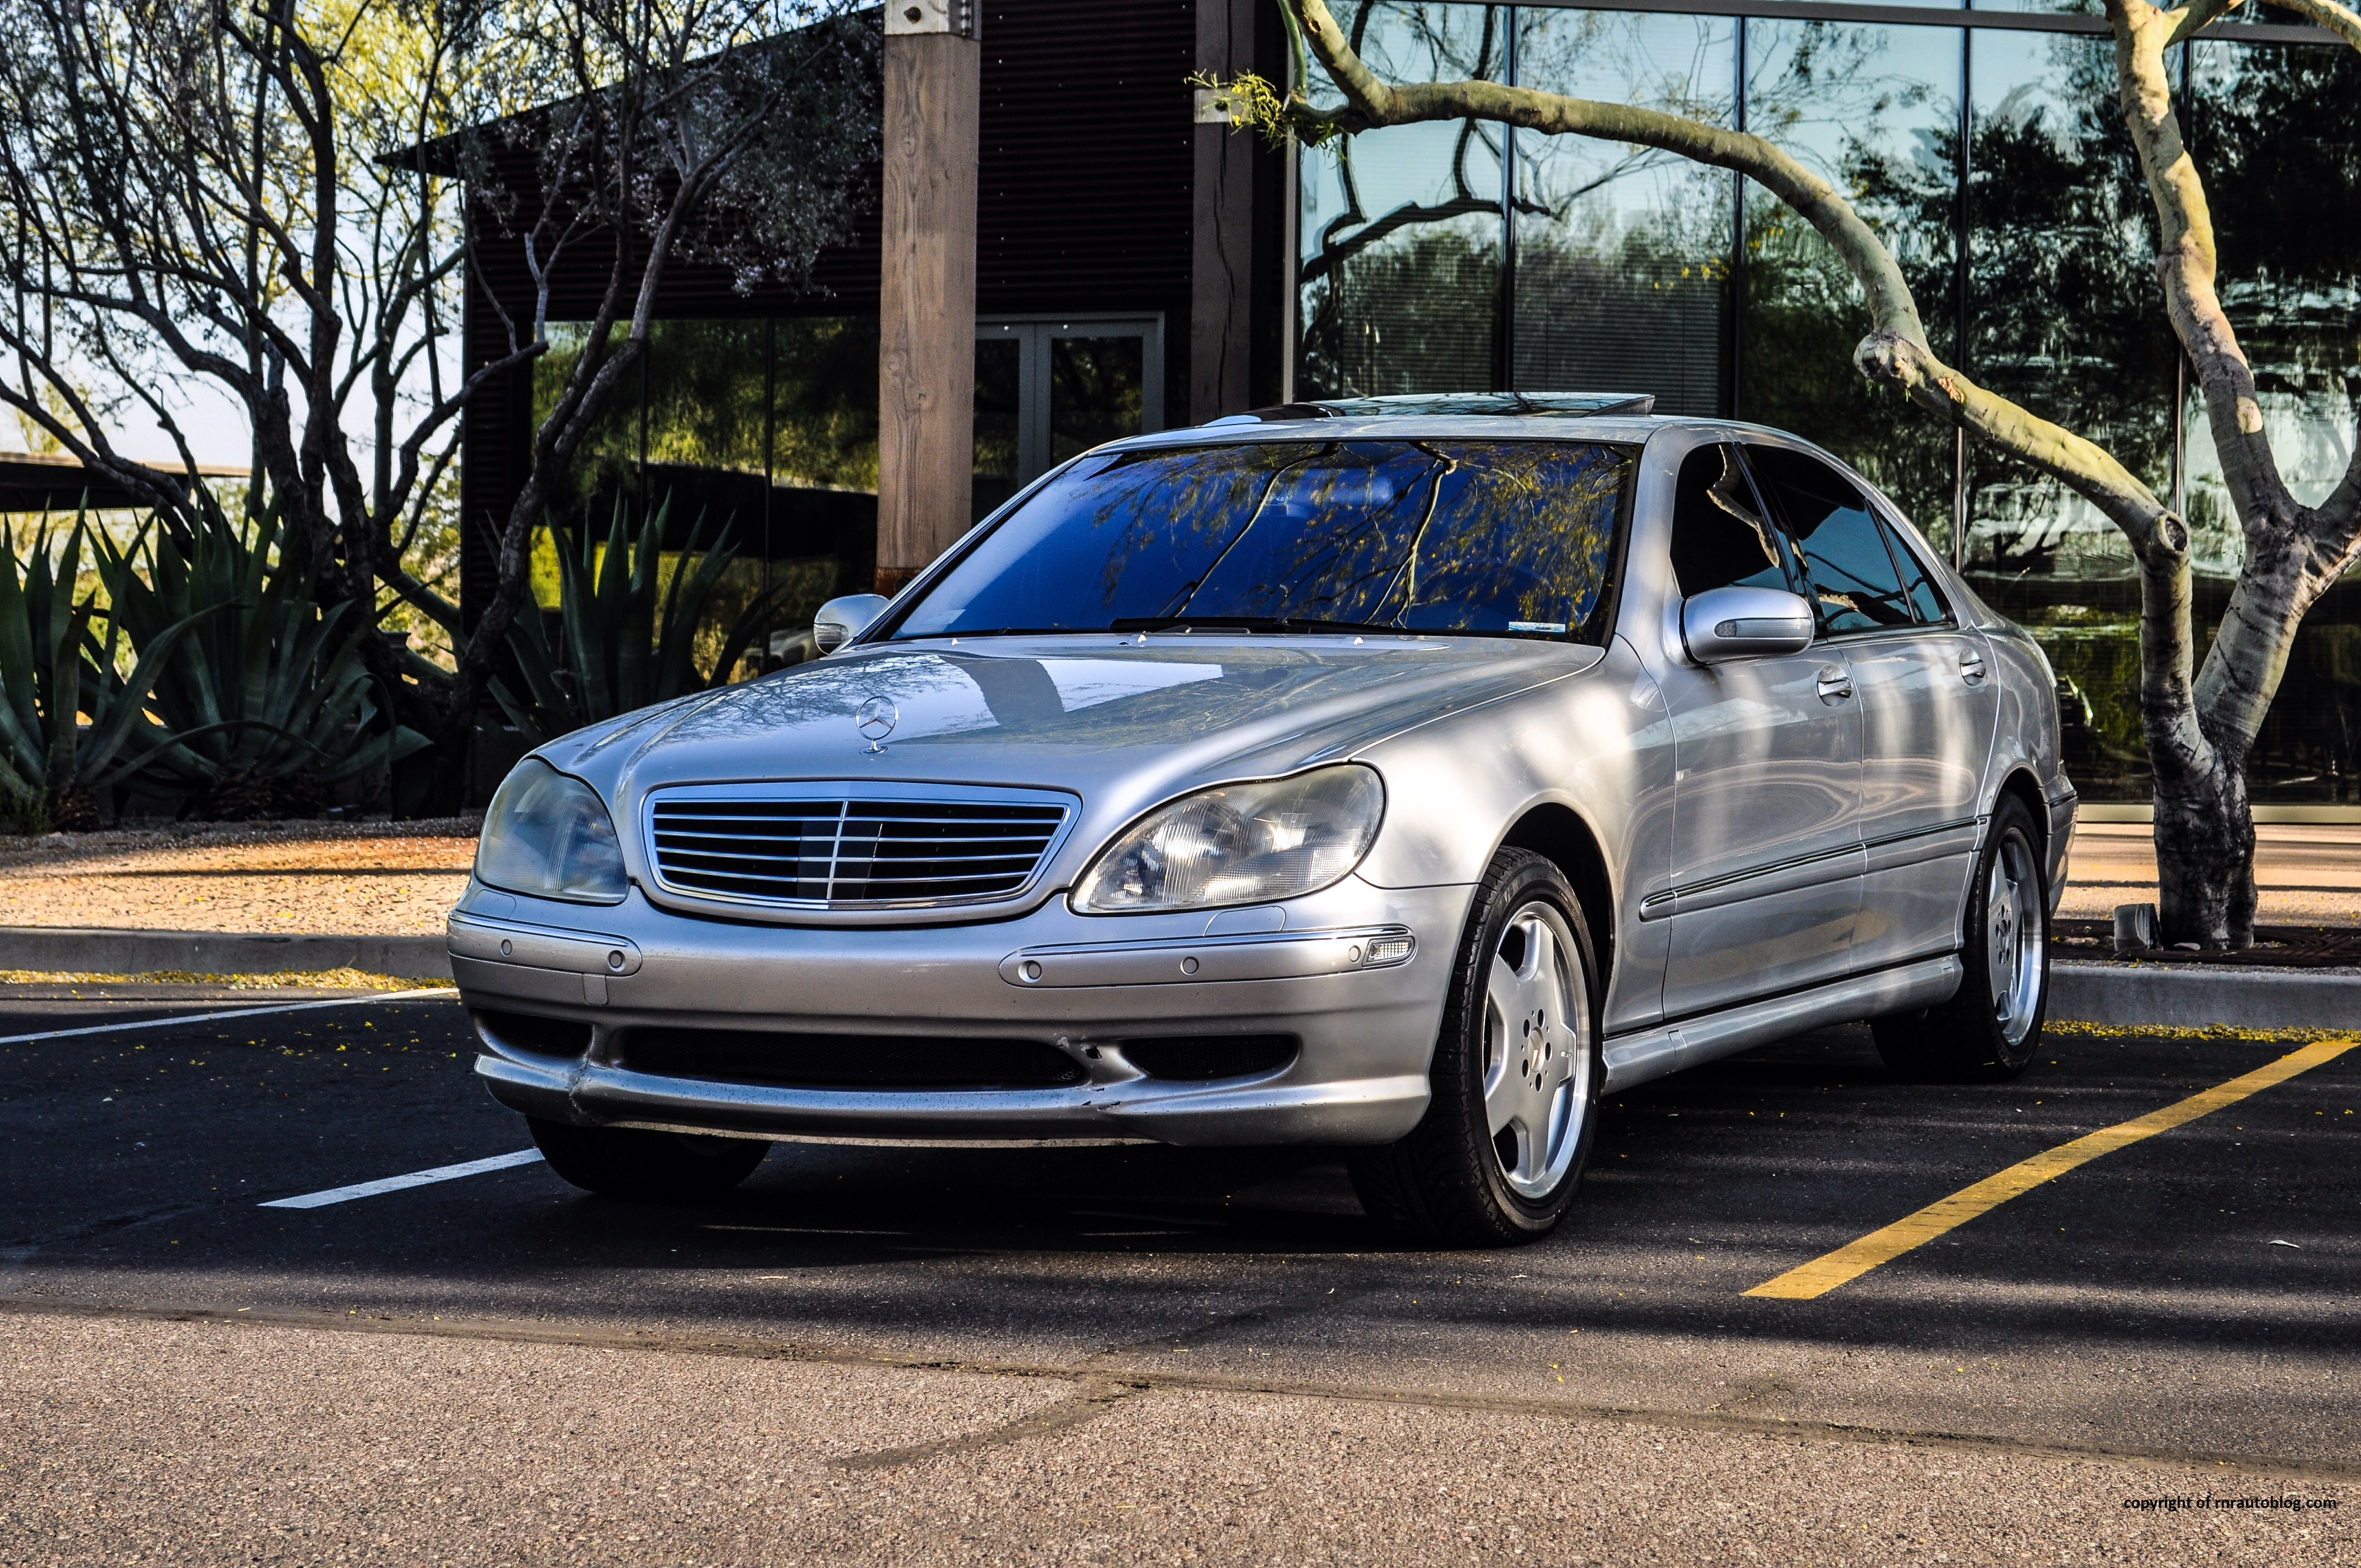 2001 mercedes benz s55 amg teaser rnr automotive blog for 2001 mercedes benz s55 amg